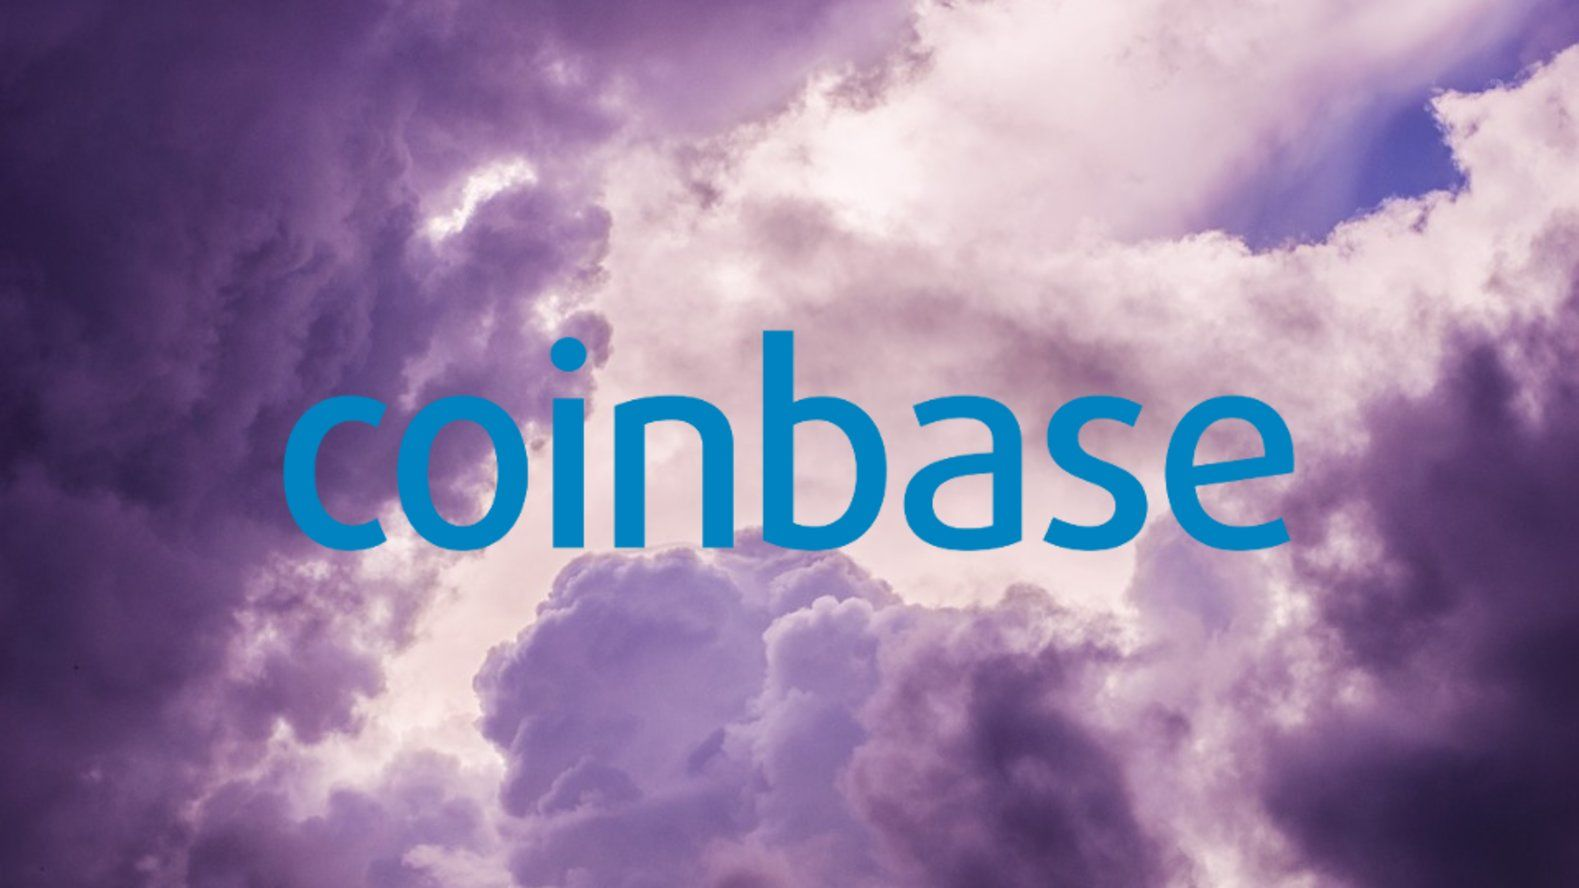 coinbase purple - Coinbase Boosts Support For Decentralized Apps And Platforms - WalletLink Support Added To OpenSea